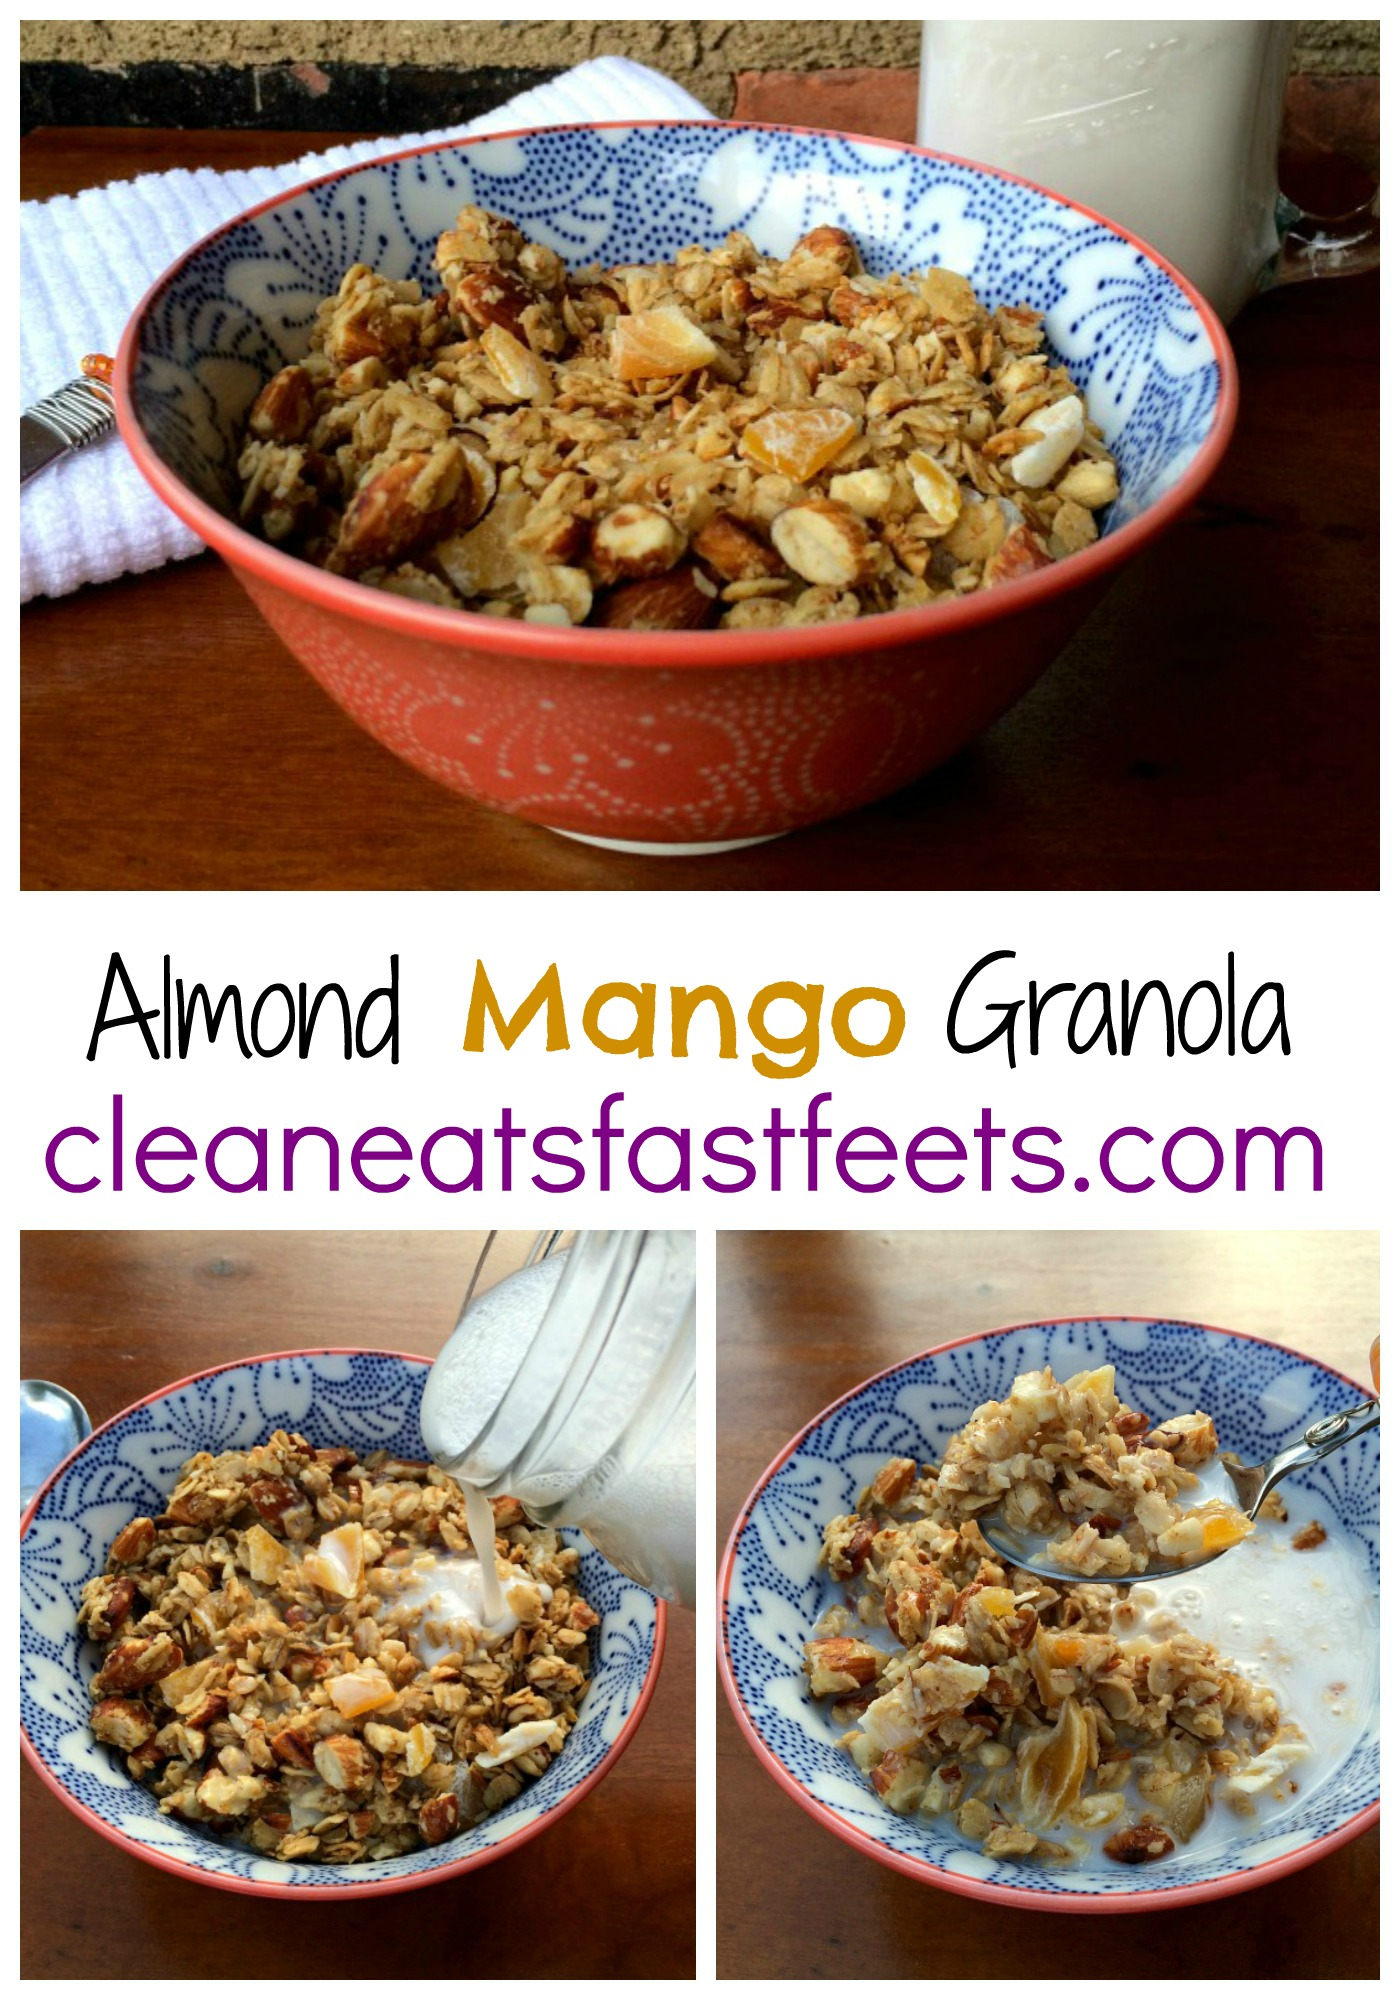 Almond Mango Granola. A sweet and crunchy combination designed to make your mouth sing.